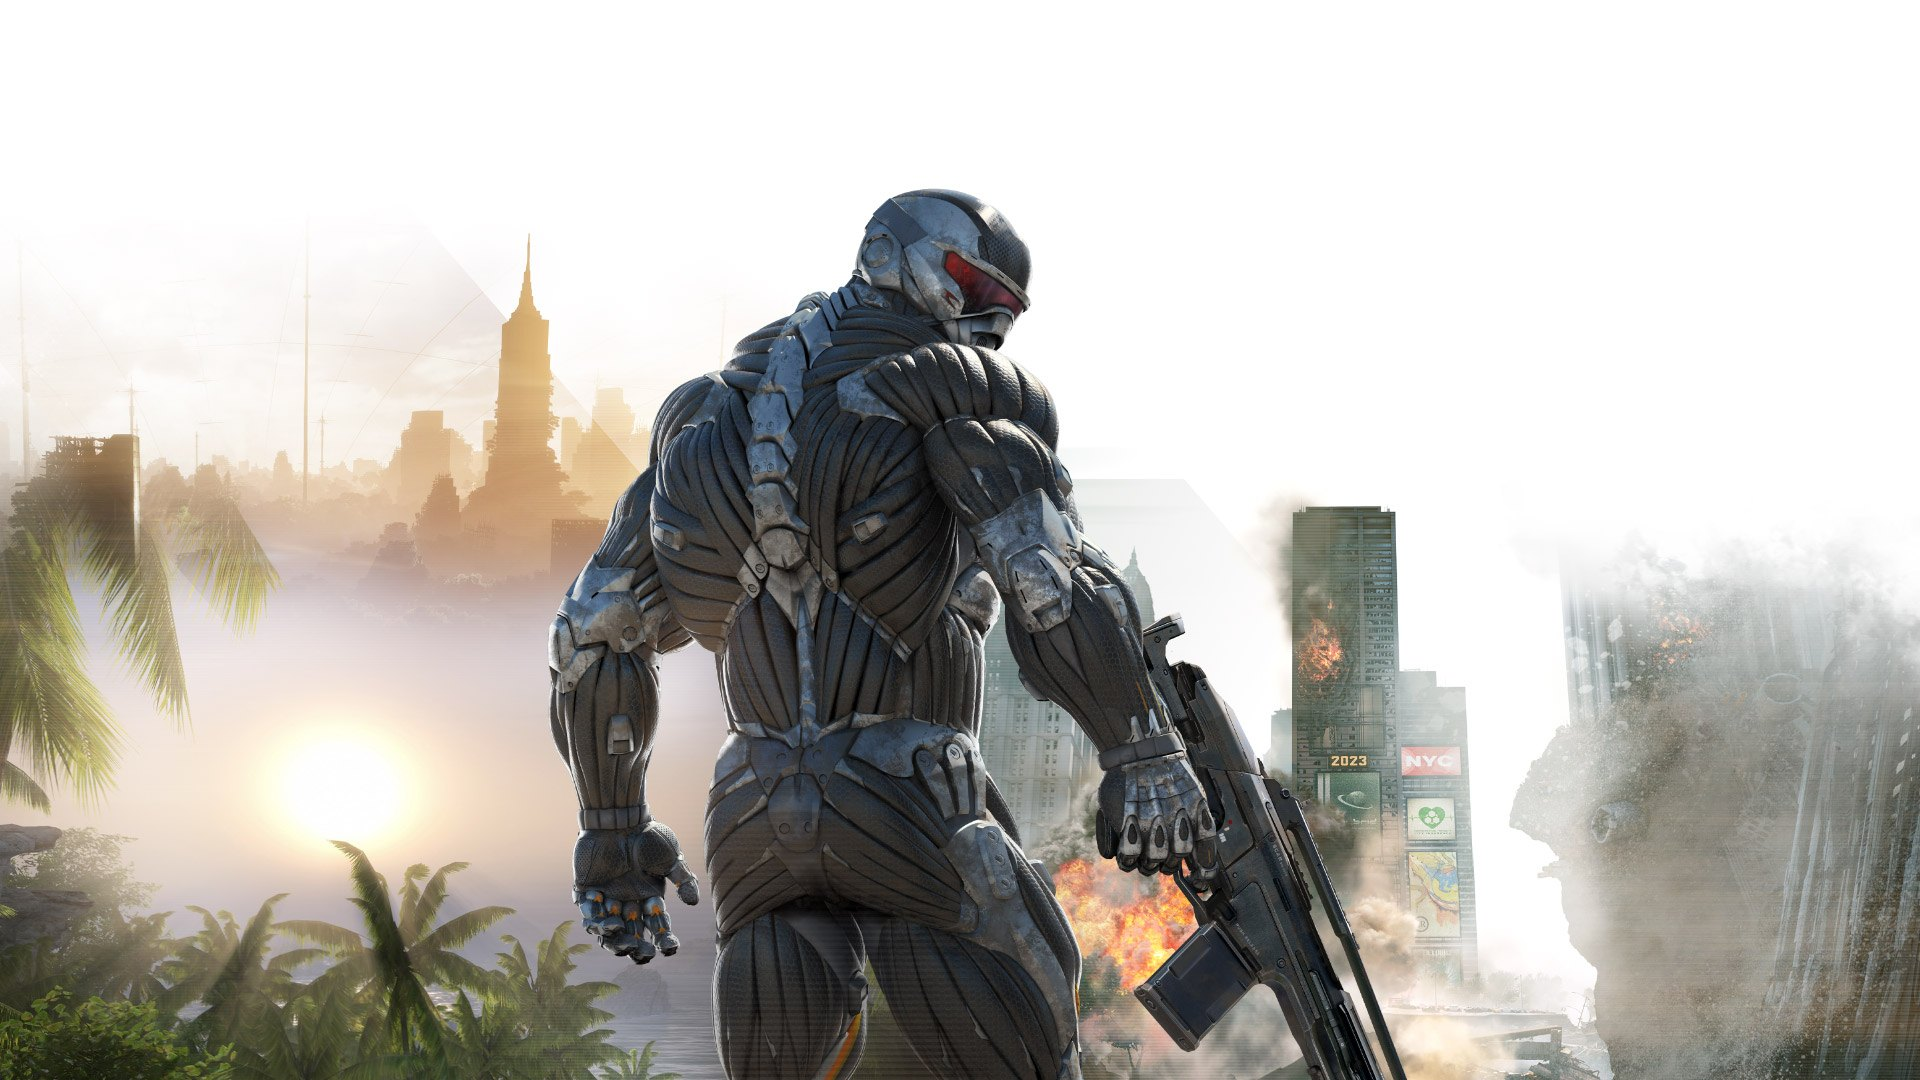 Neue Remaster: But can it run the Crysis Remastered Trilogie?